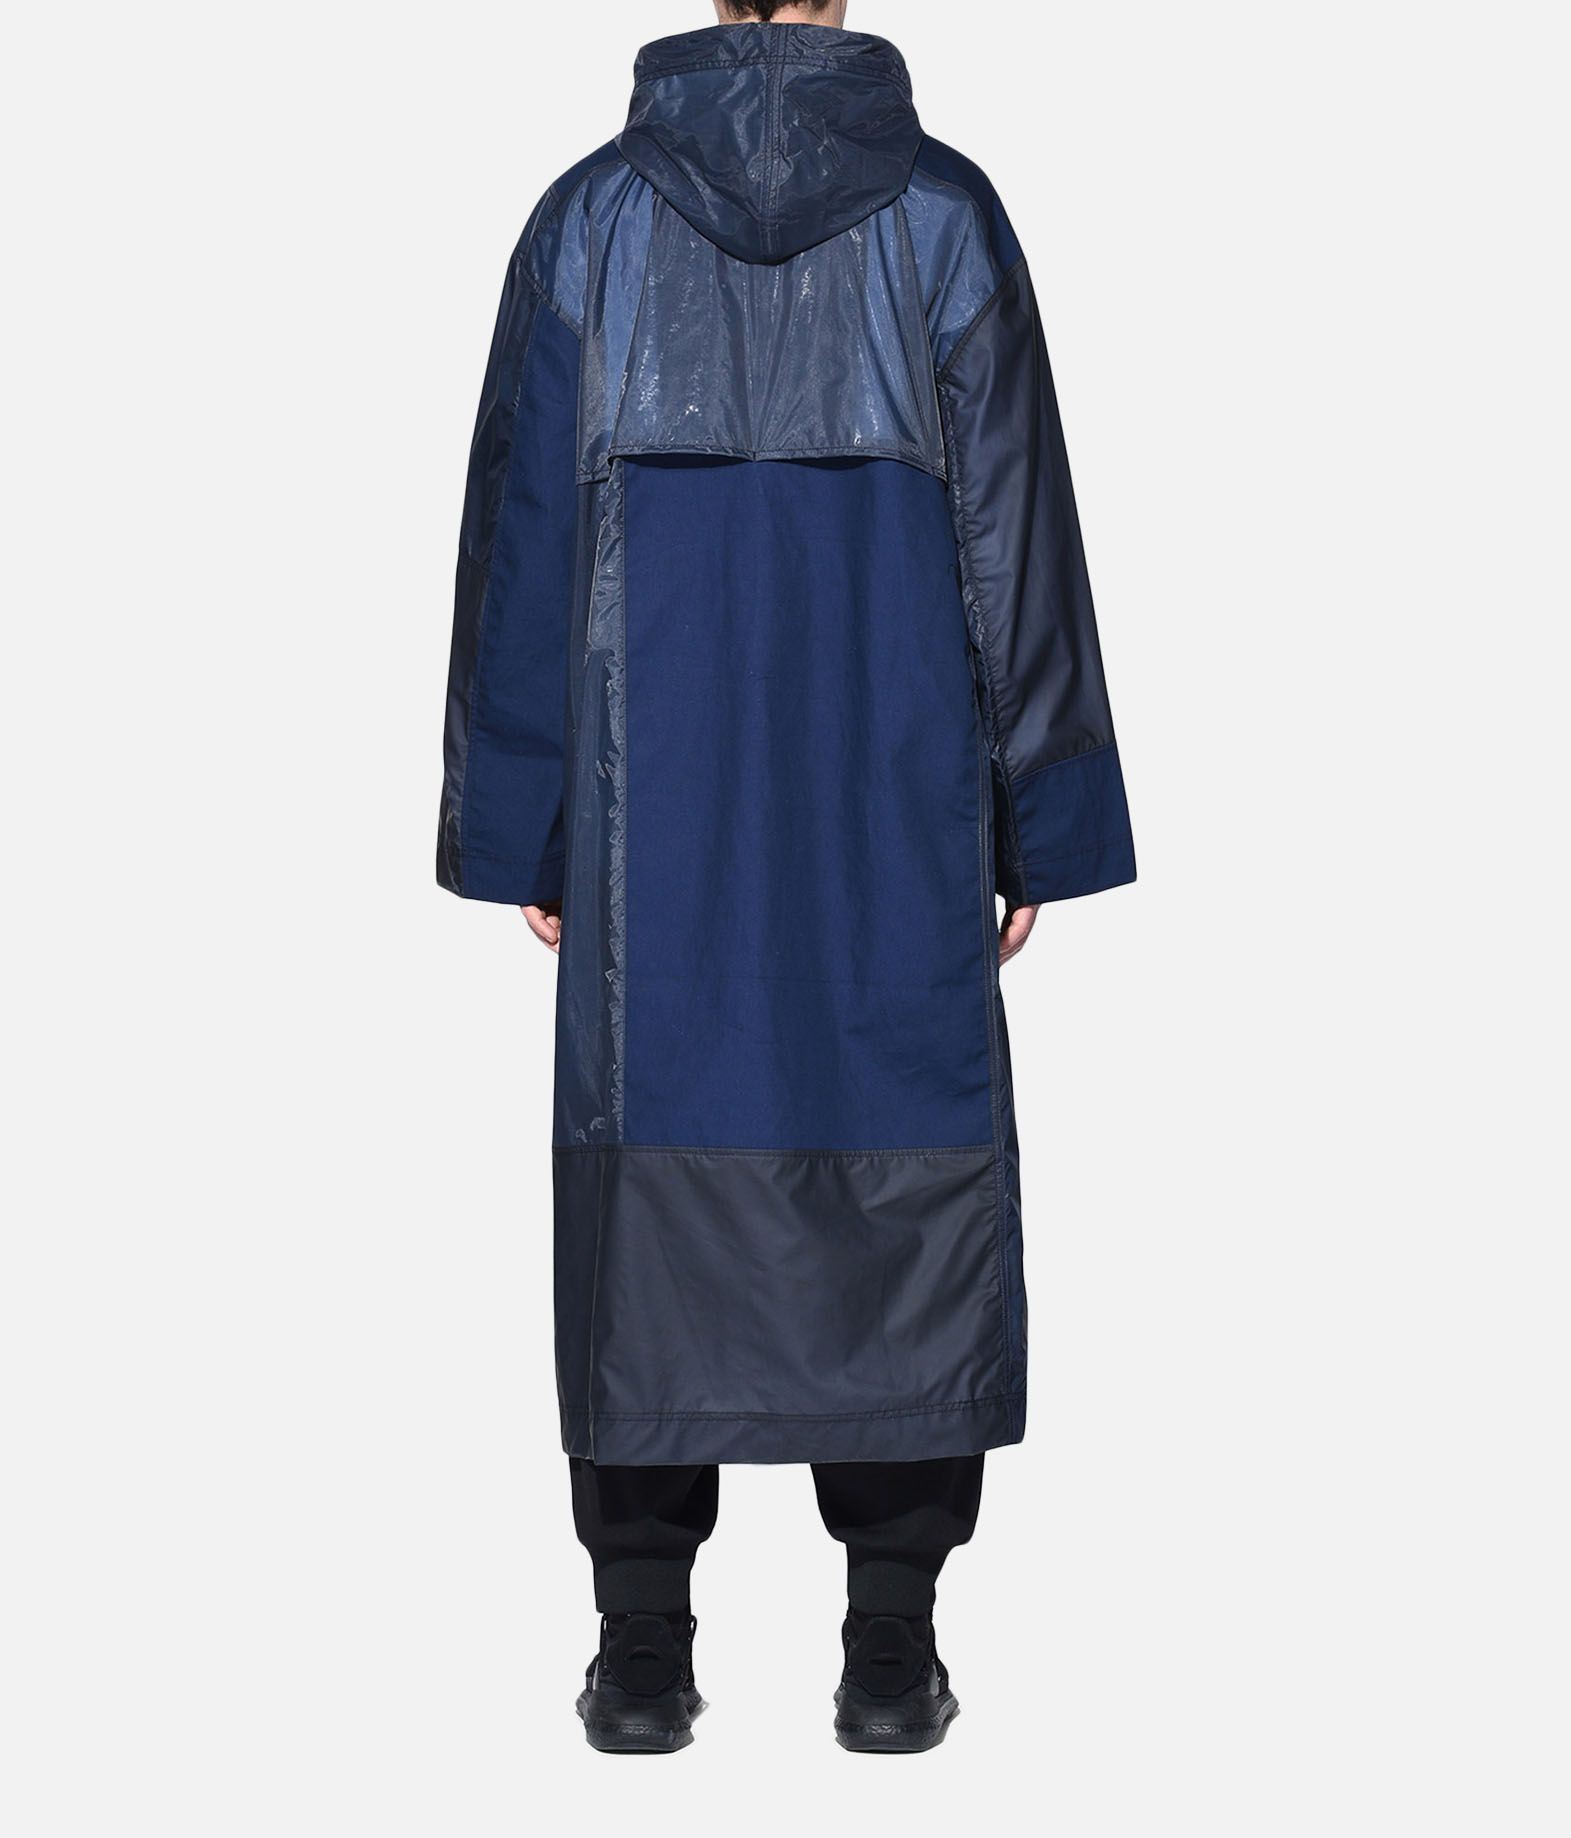 Y-3 Y-3 Patchwork Long Coat Coat Man d